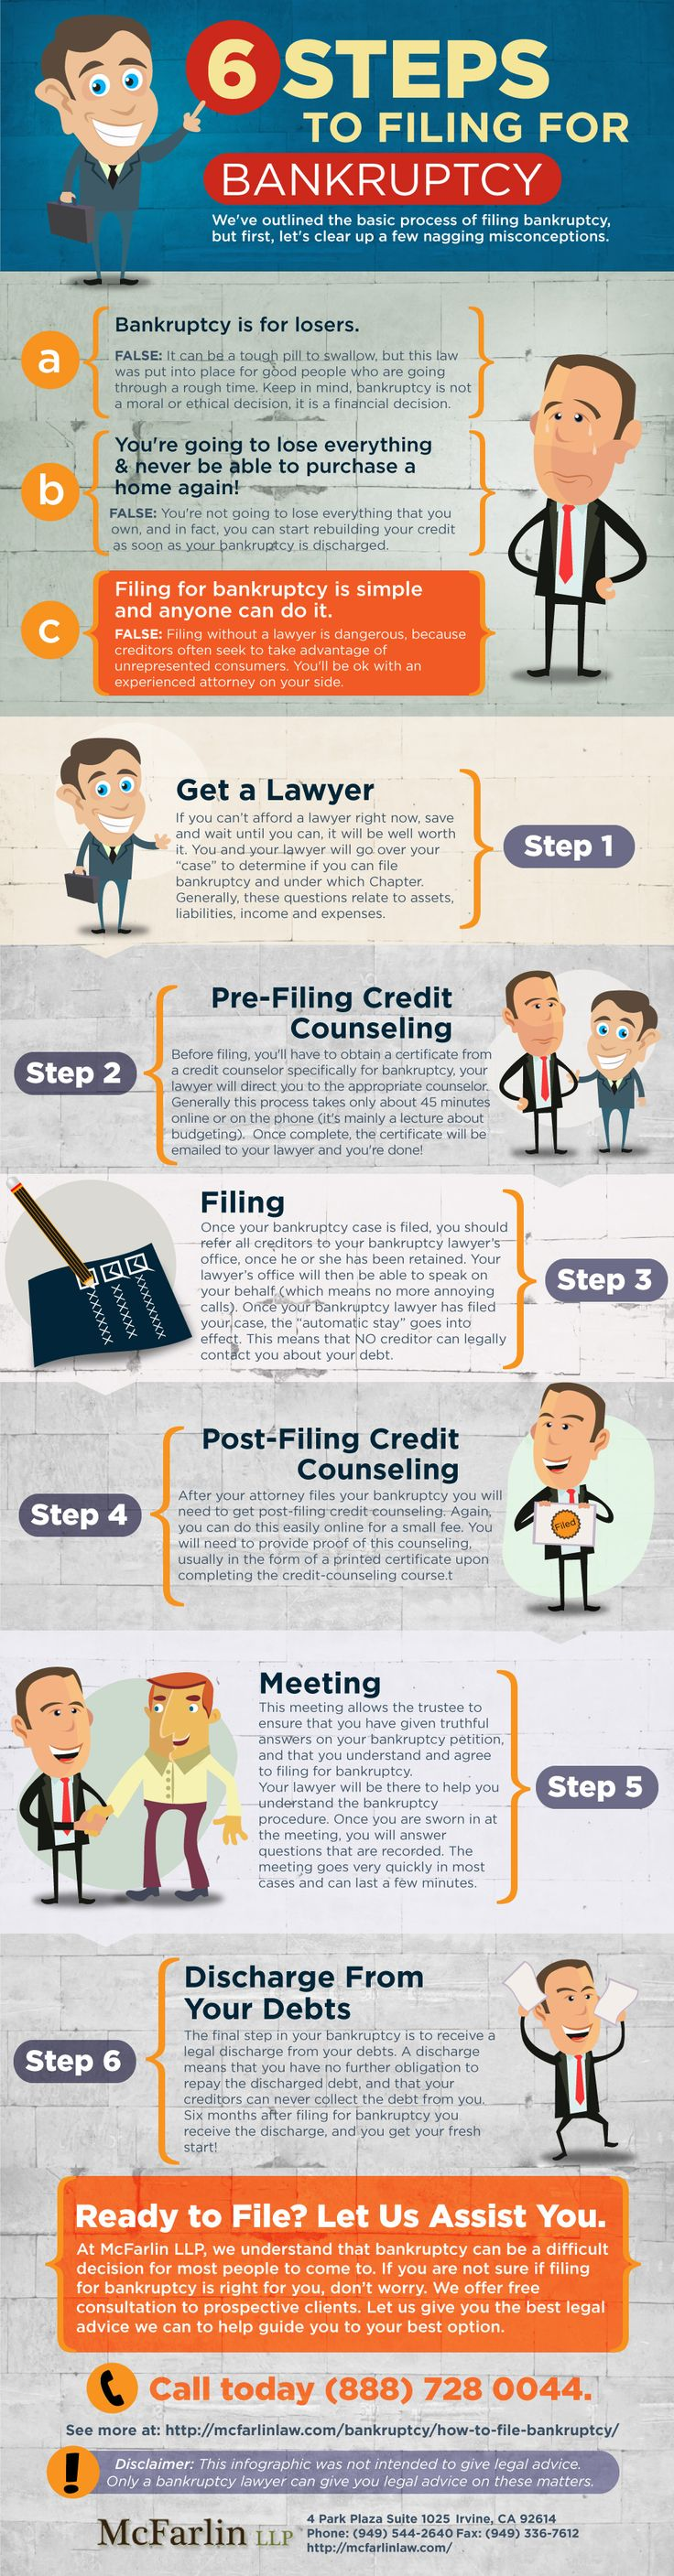 """Los Angeles Bankruptcy Attorneys at McFarlin LLP have successfully handled thousands of bankruptcy cases throughout California. Bankruptcy is not a moral or emotional decision, it is financial decision. Check out our """"6 Easy Steps To Filing For Bankruptcy"""" infographic, and contact us today at (888) 728 0044 to speak with one of our bankruptcy lawyers."""